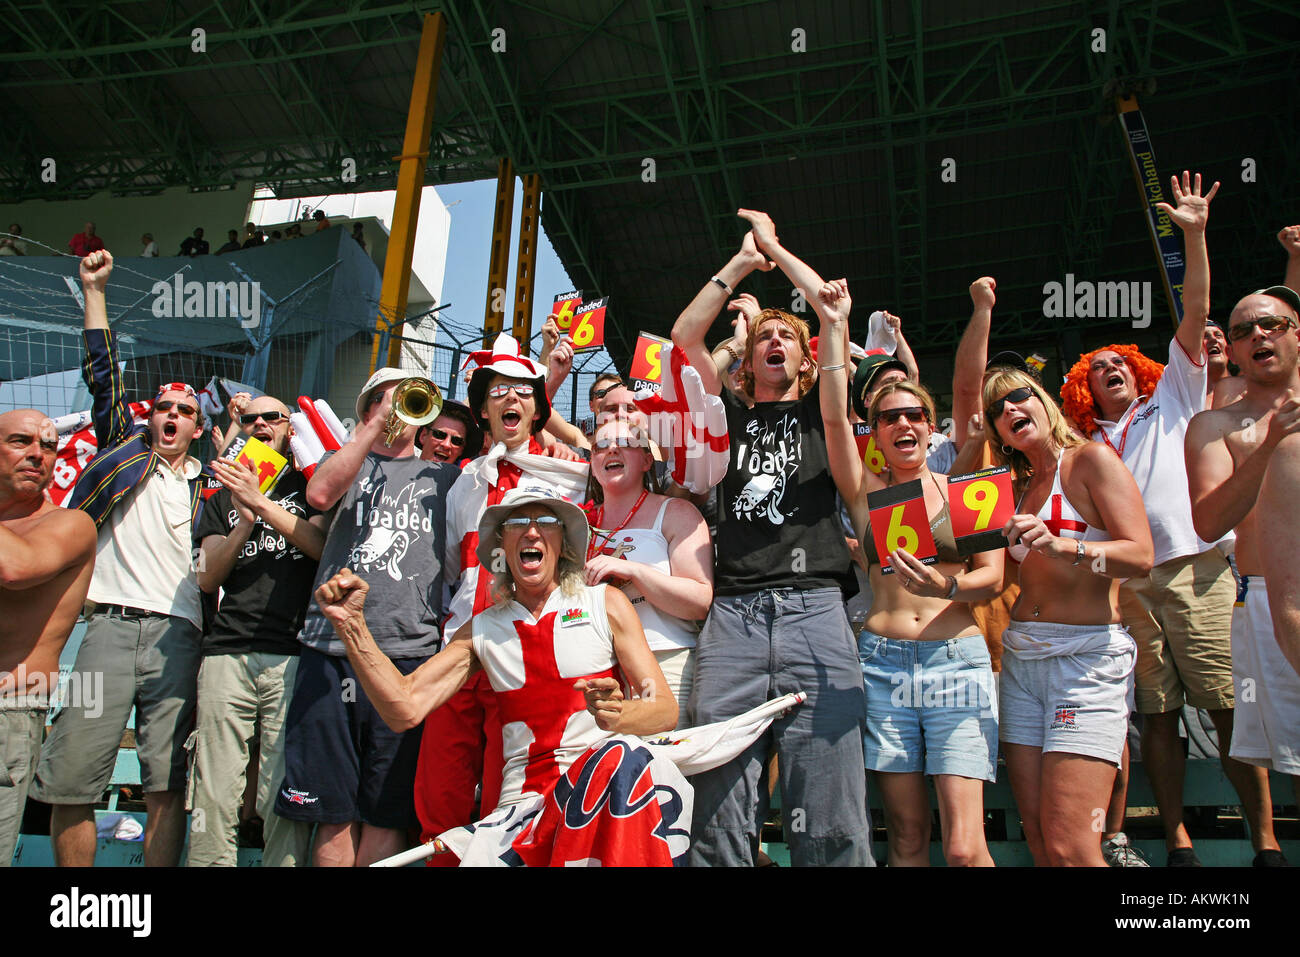 barmy army england cricket fans singing song - Stock Image